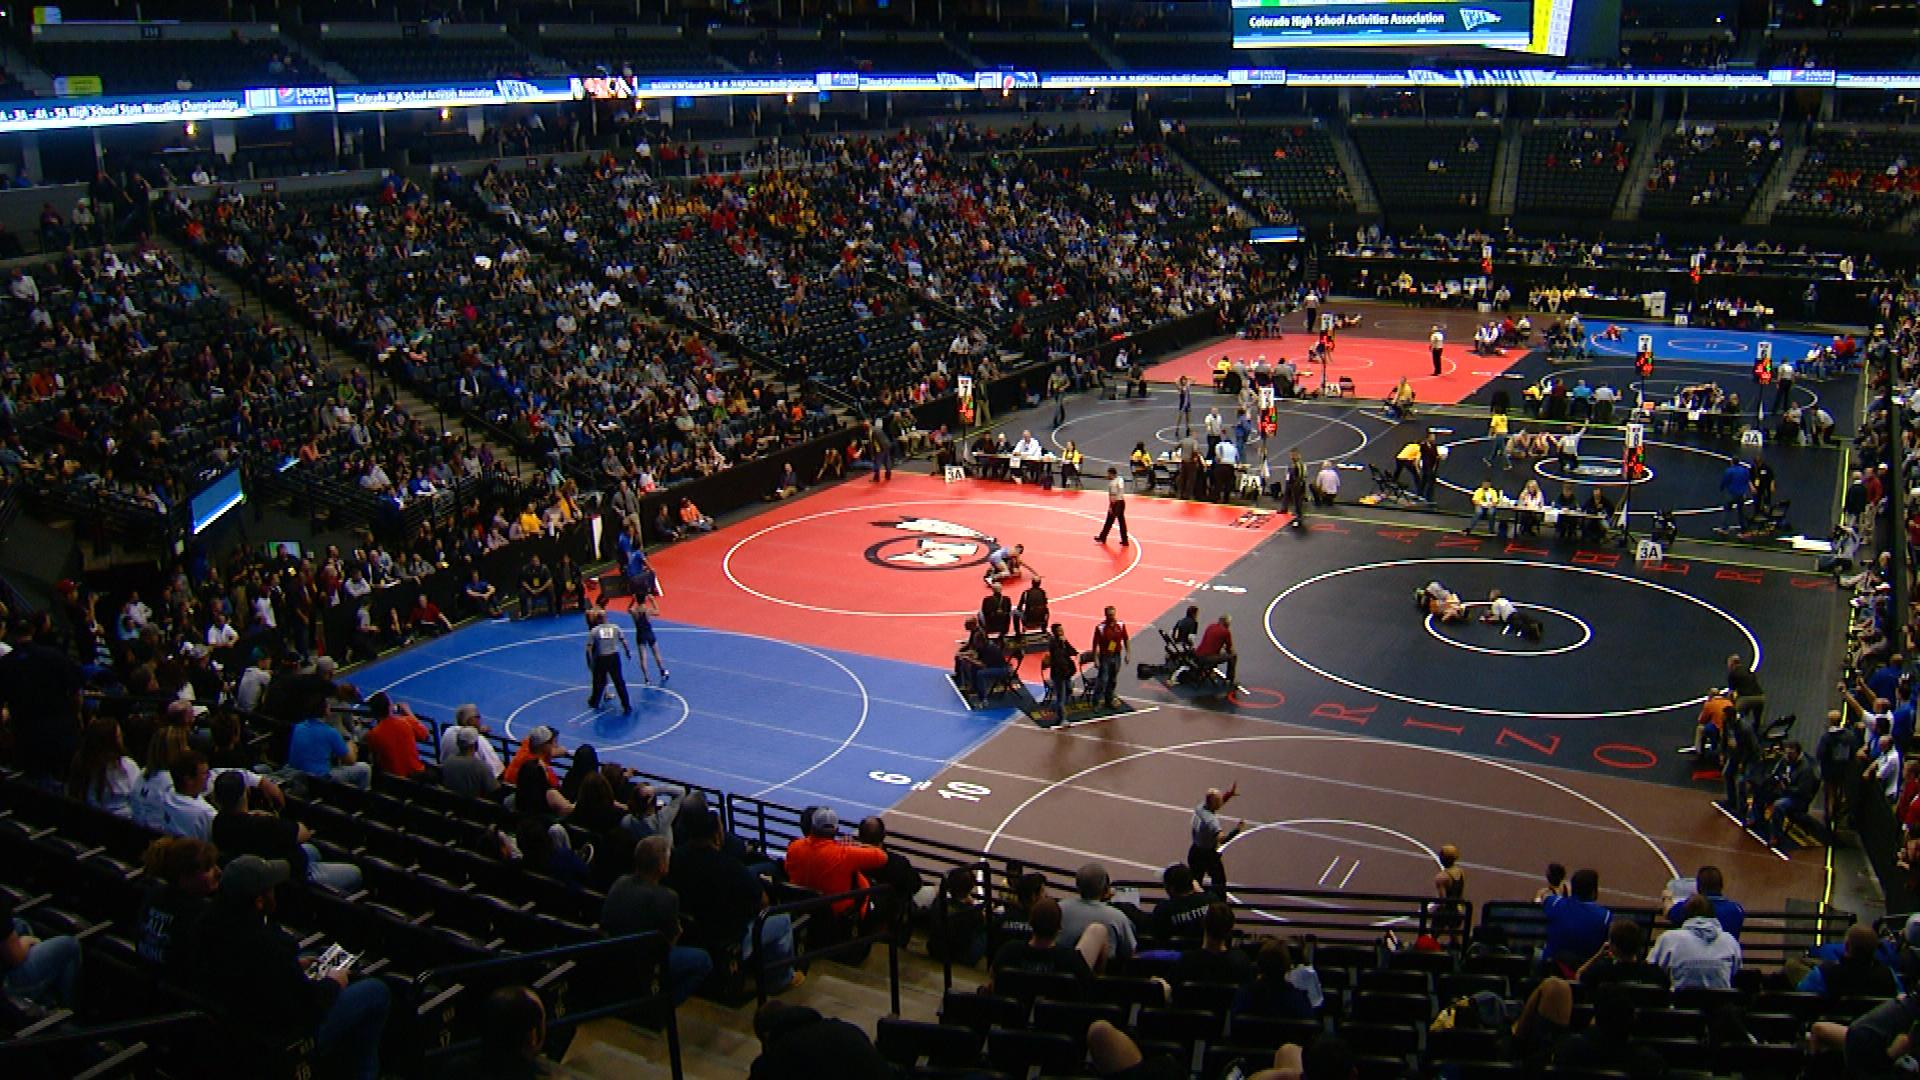 An image of the Colorado High School Wrestling Tournament on Feb. 18, 2016 (credit: CBS)